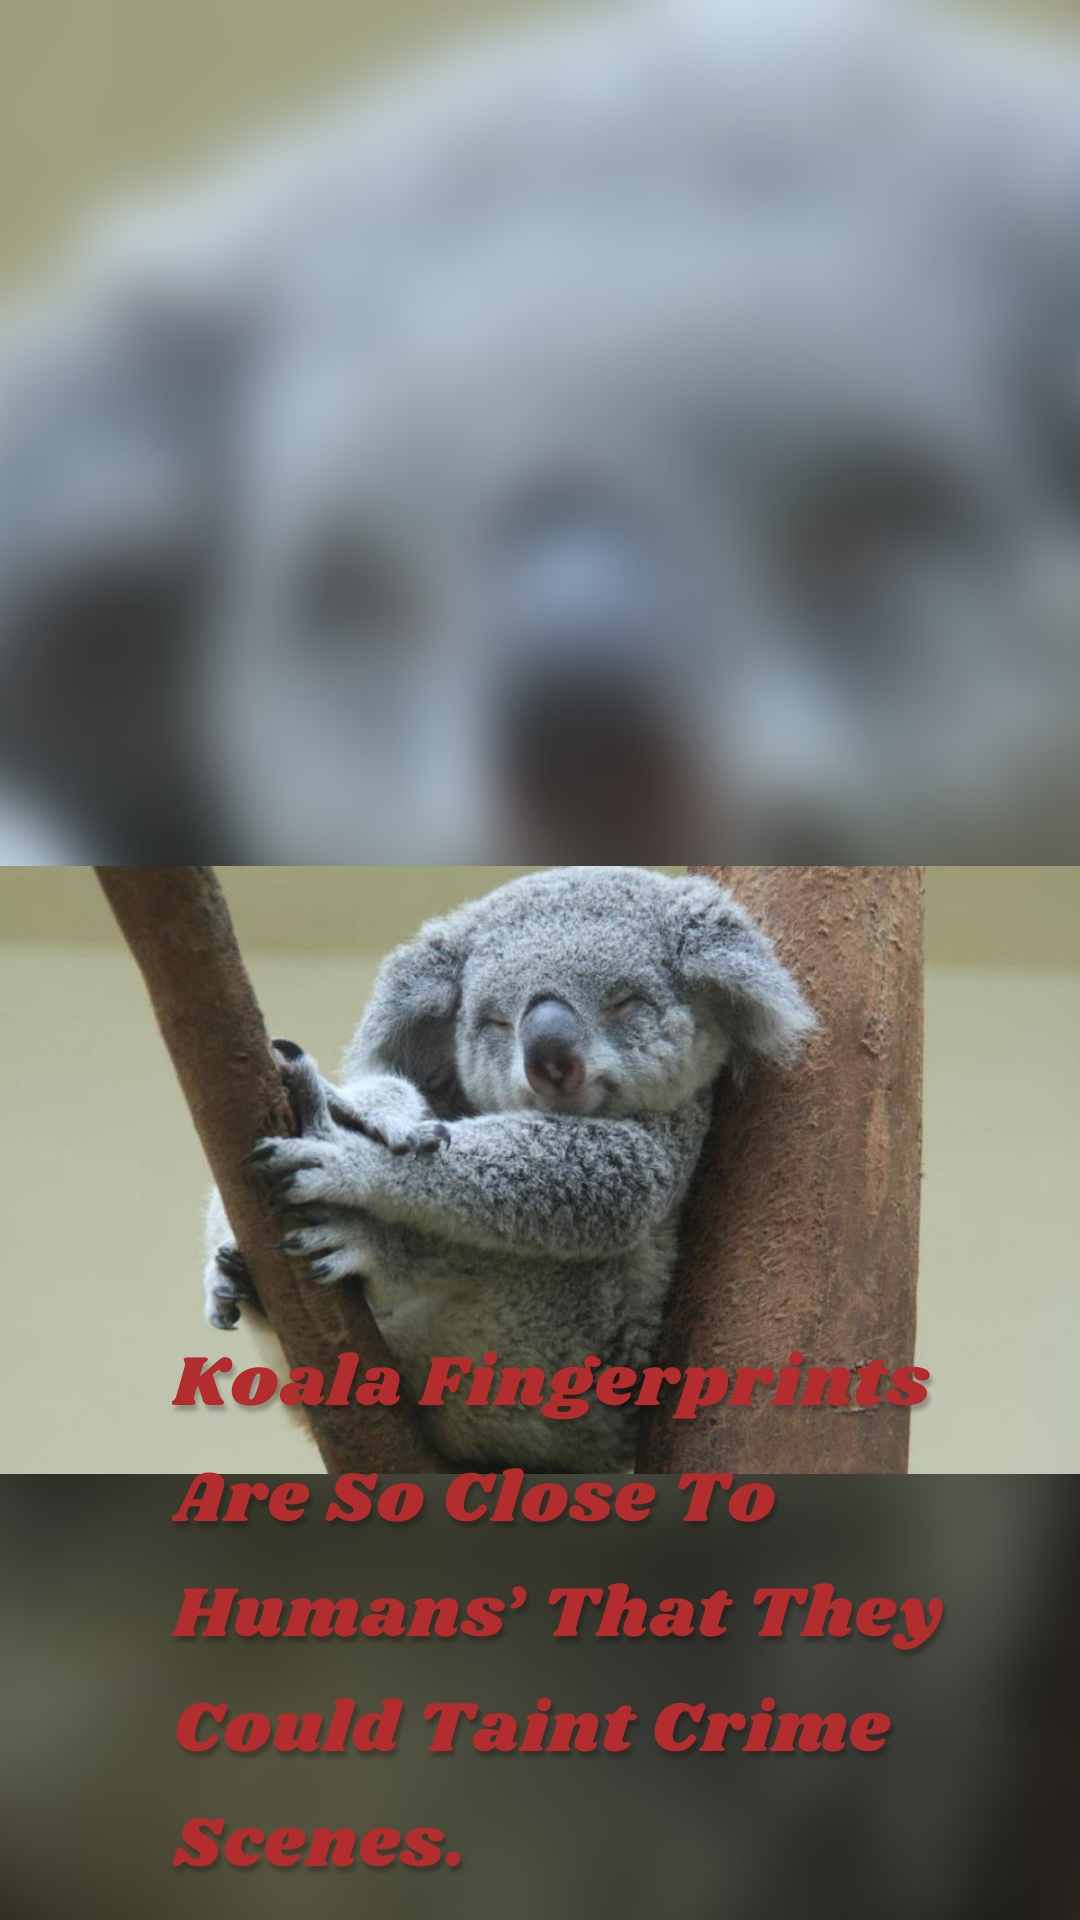 Koala Fingerprints Are So Close To Humans' That They Could Taint Crime Scenes.